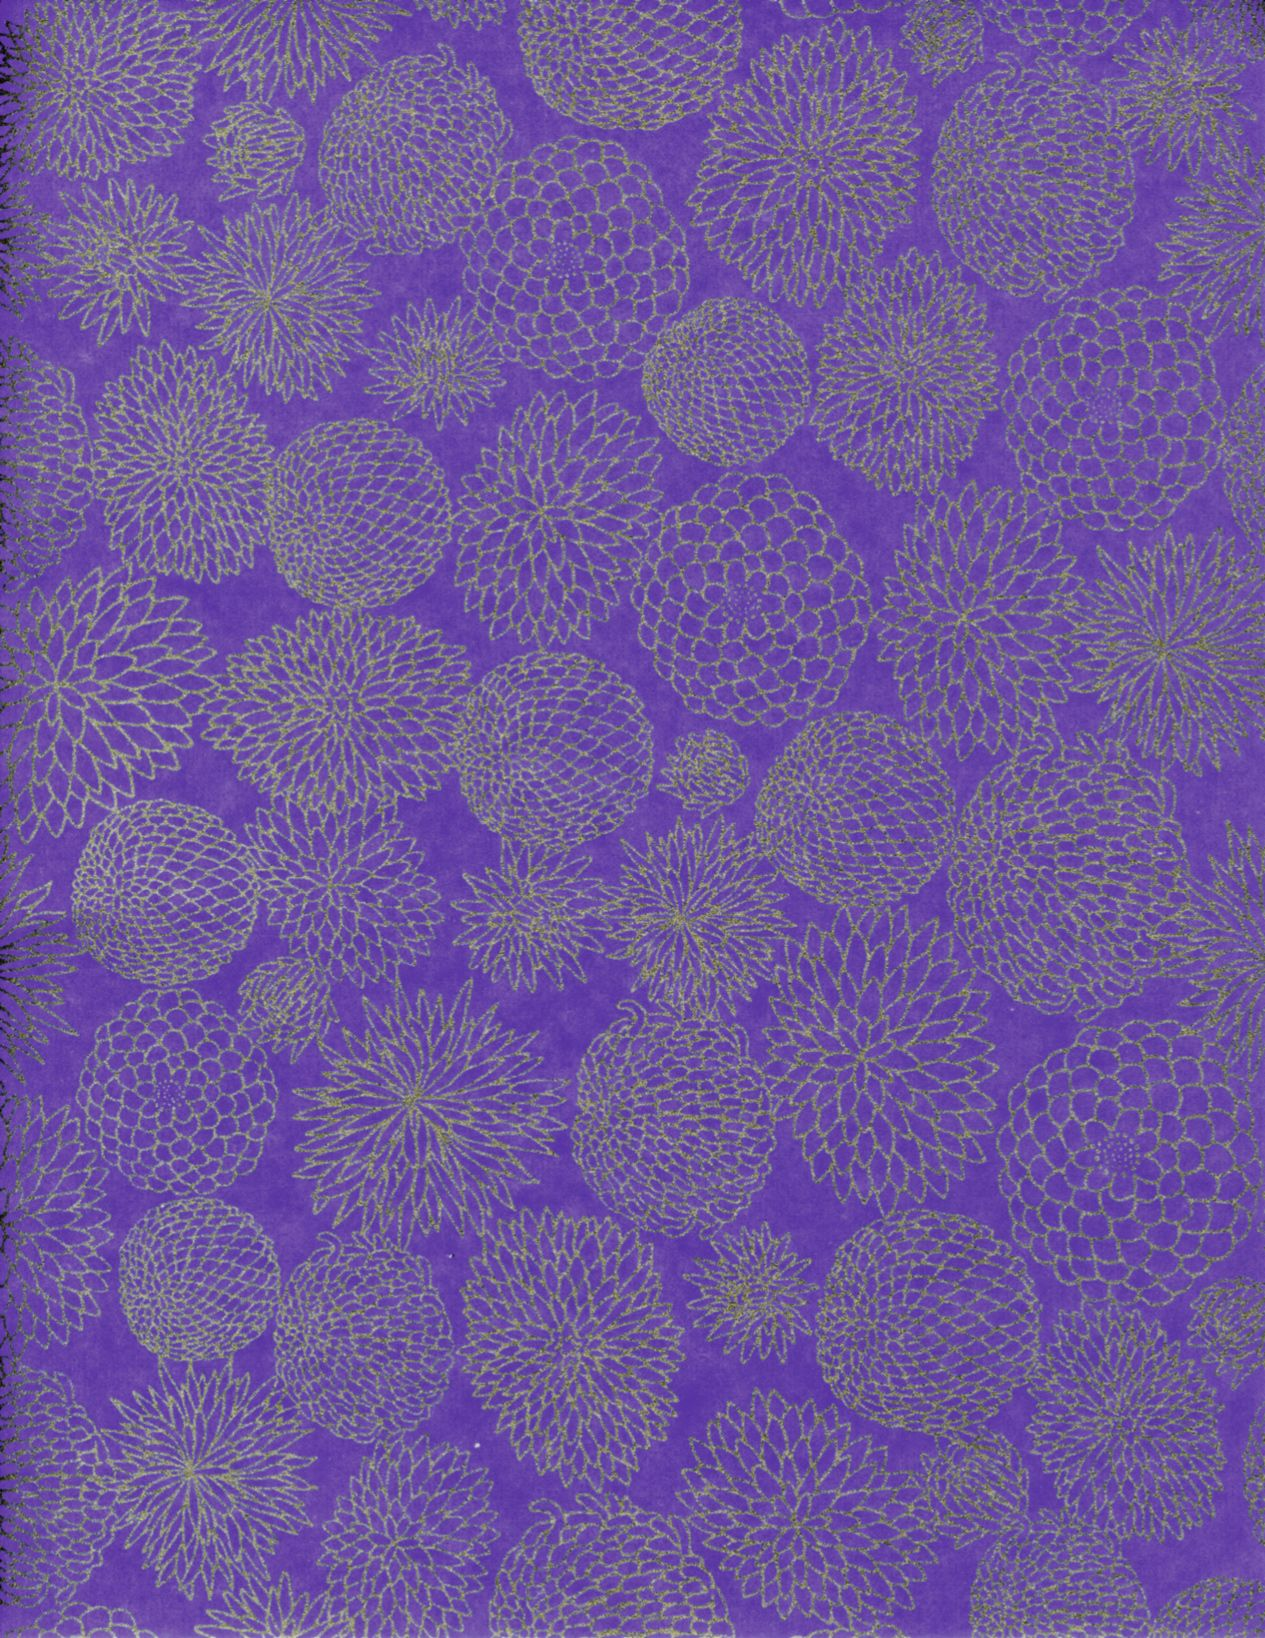 http://www.japanesepaperplace.com/images/products/chiyo/bigimages/902c-lg.jpg